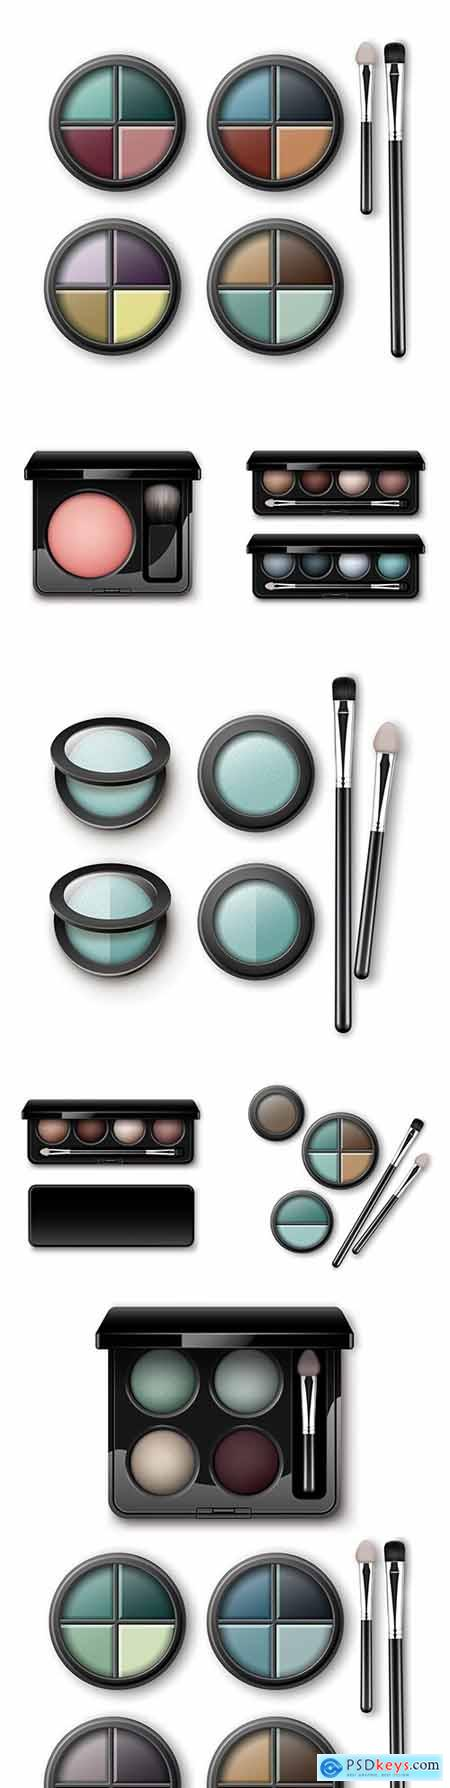 Multi-colored set shadows in black case and makeup brushes